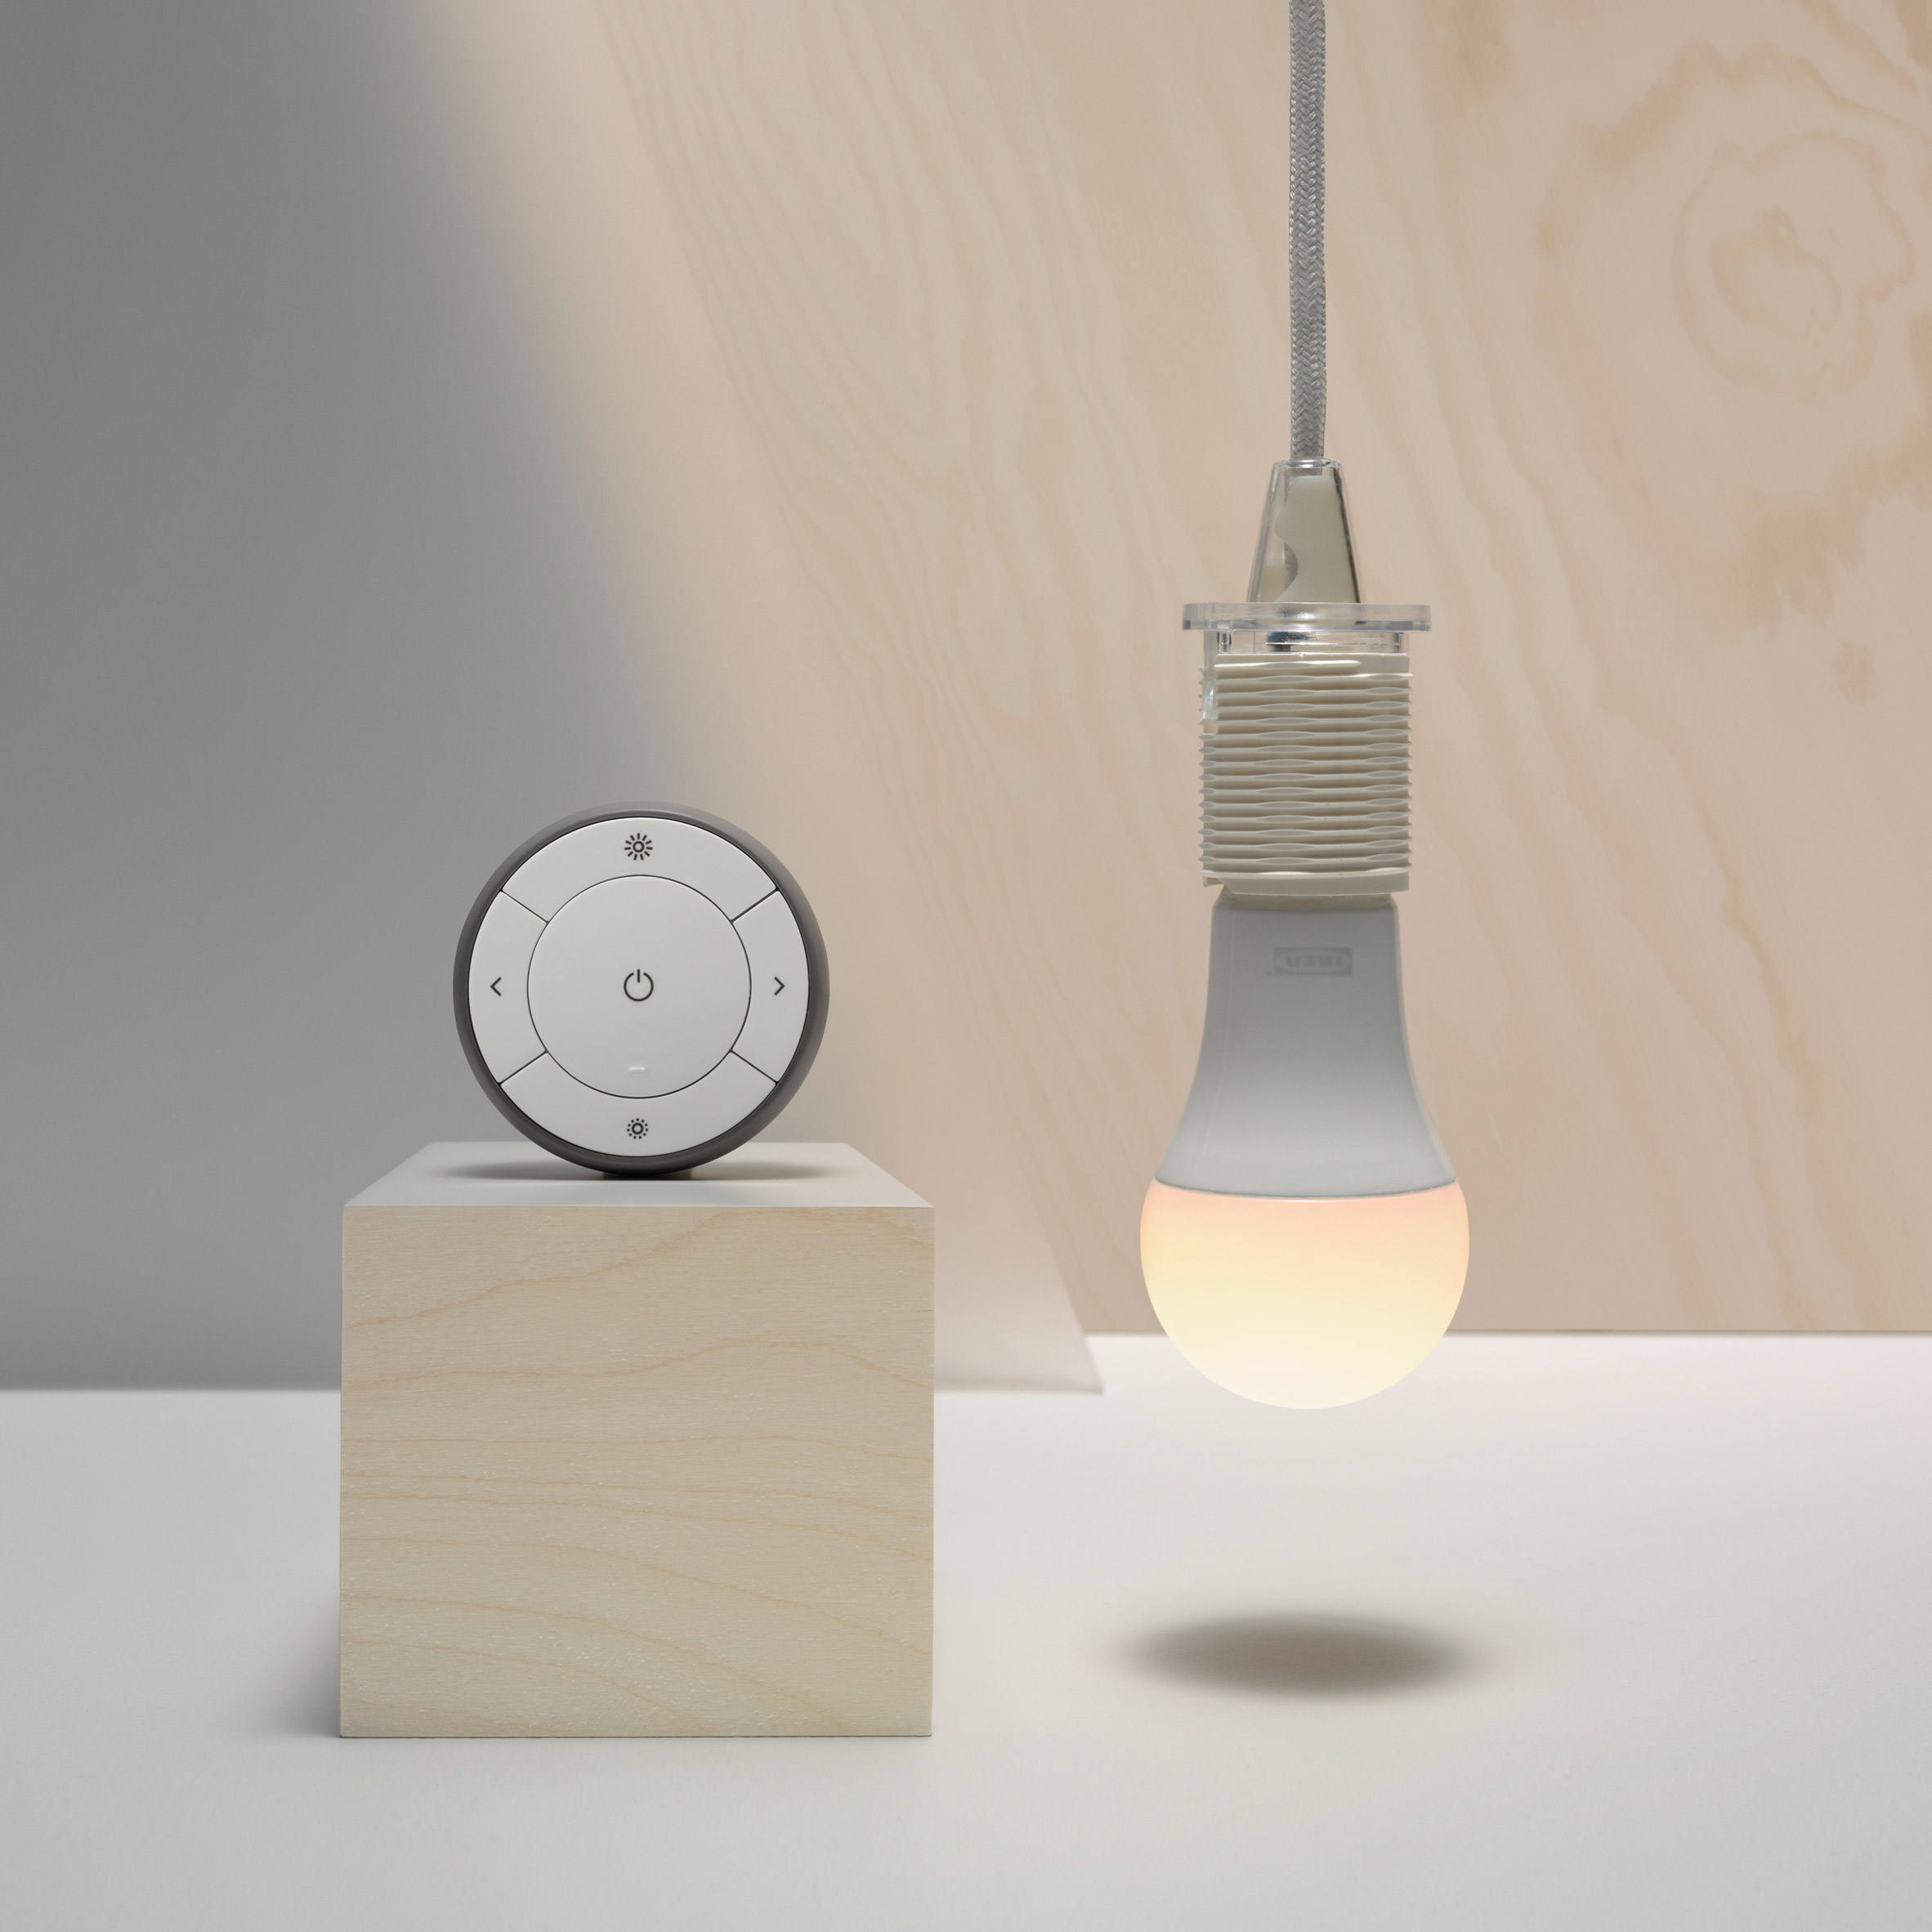 ikea-smart-lights-design-lighting-lamps_dezeen_2364_col_7